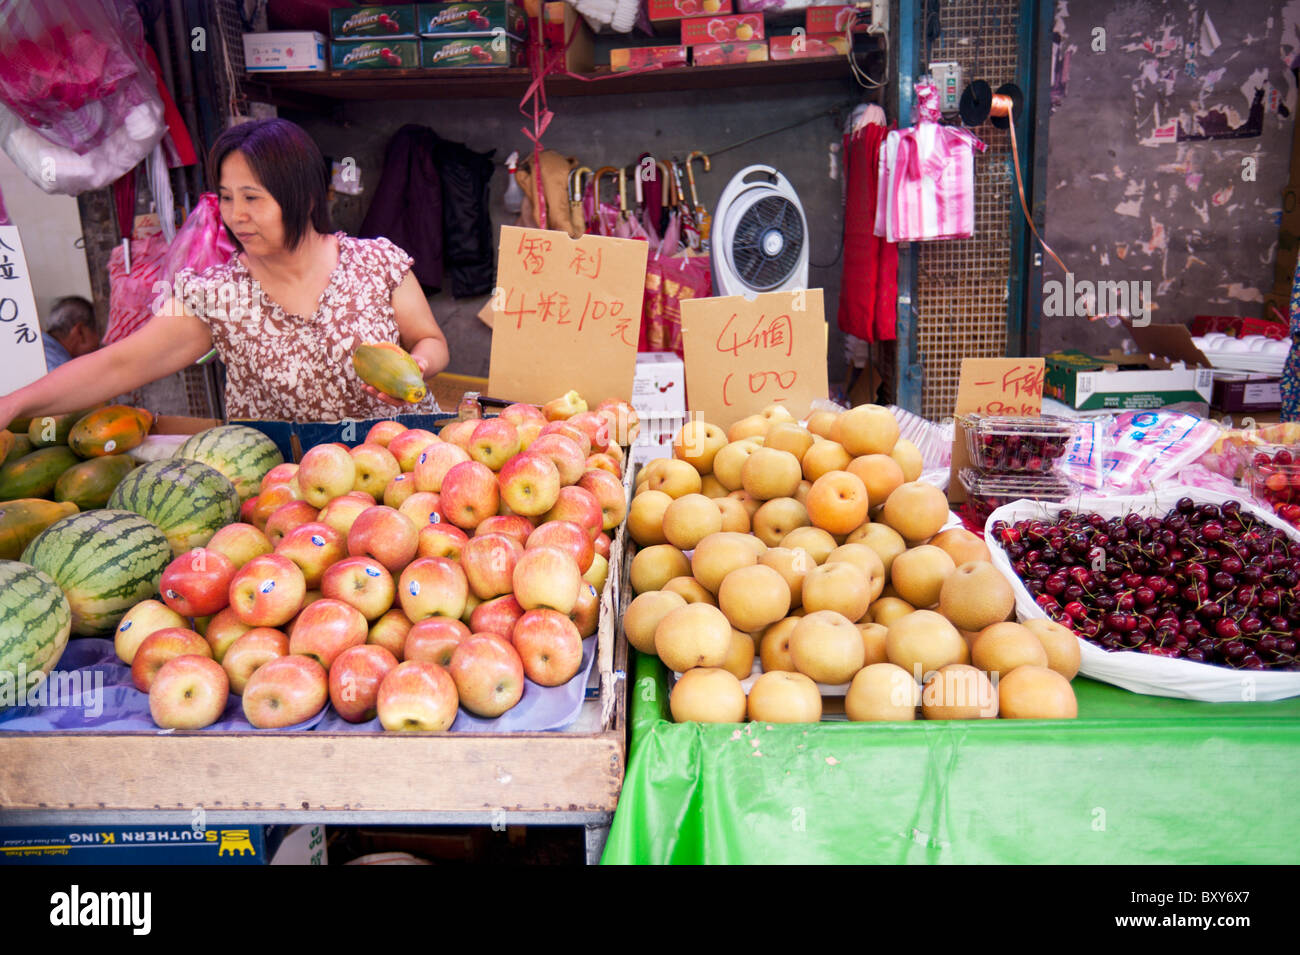 A fruit seller at a fruit market in central Taipei stands behind a